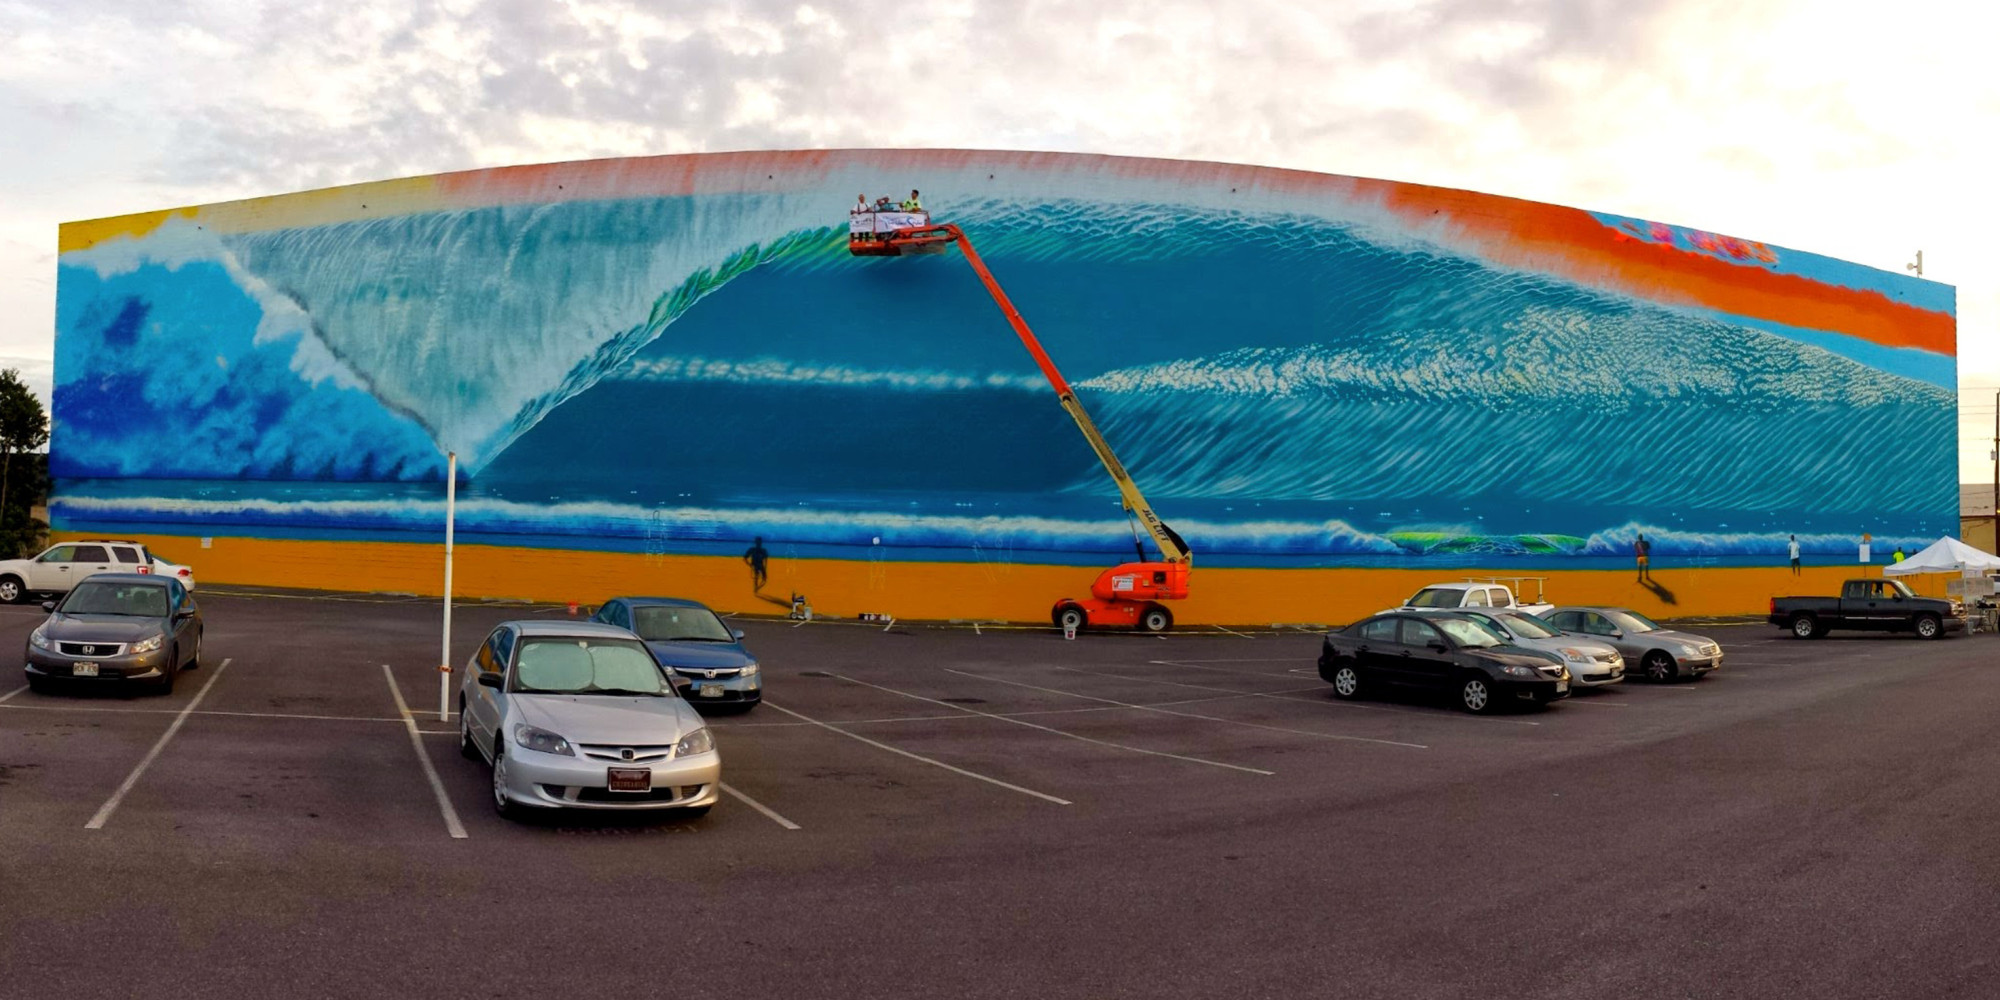 hilton alves completes world s largest surf mural in hawaii 100 hilton alves completes world s largest surf mural in hawaii 100 more to go huffpost